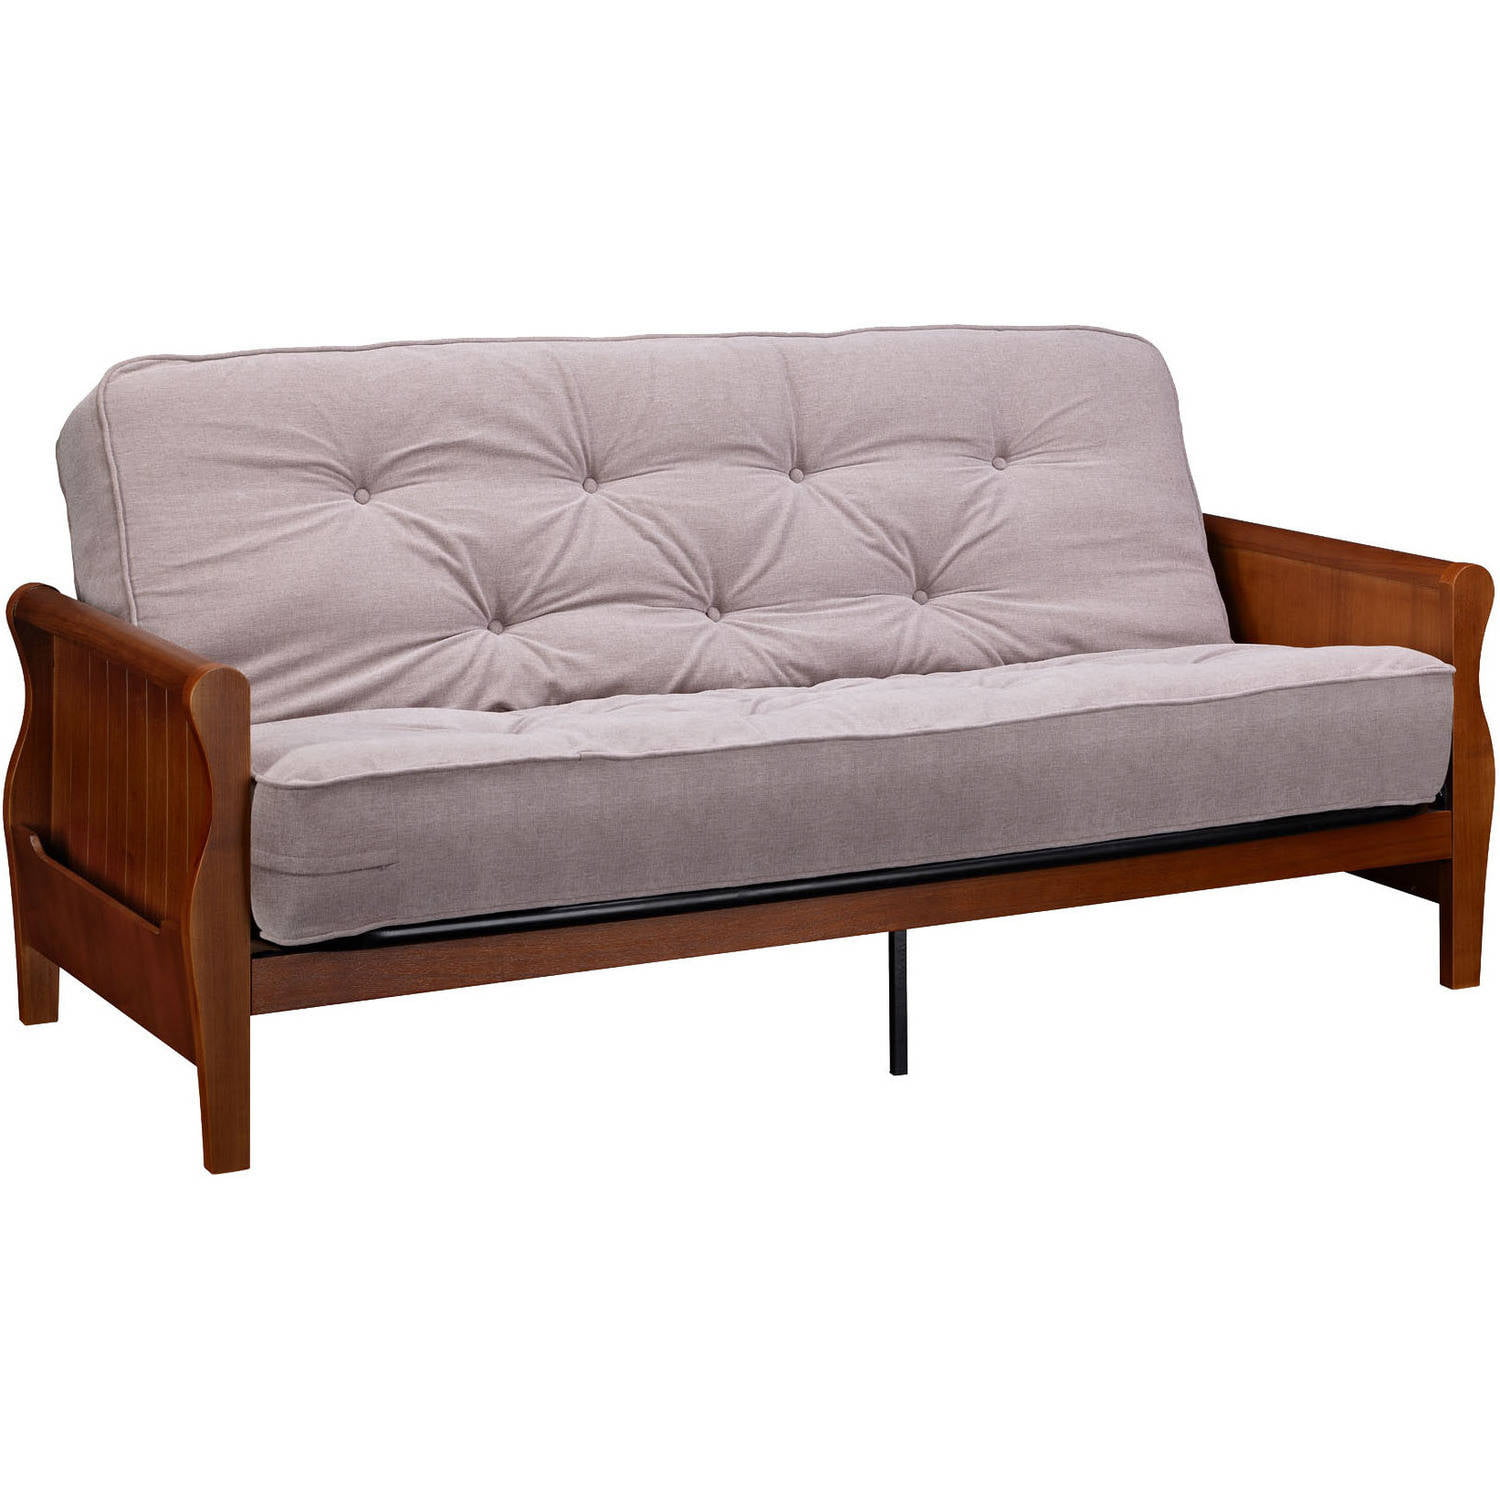 "Better Homes and Gardens Wood Arm Futon With 8"" Coil Mattress"